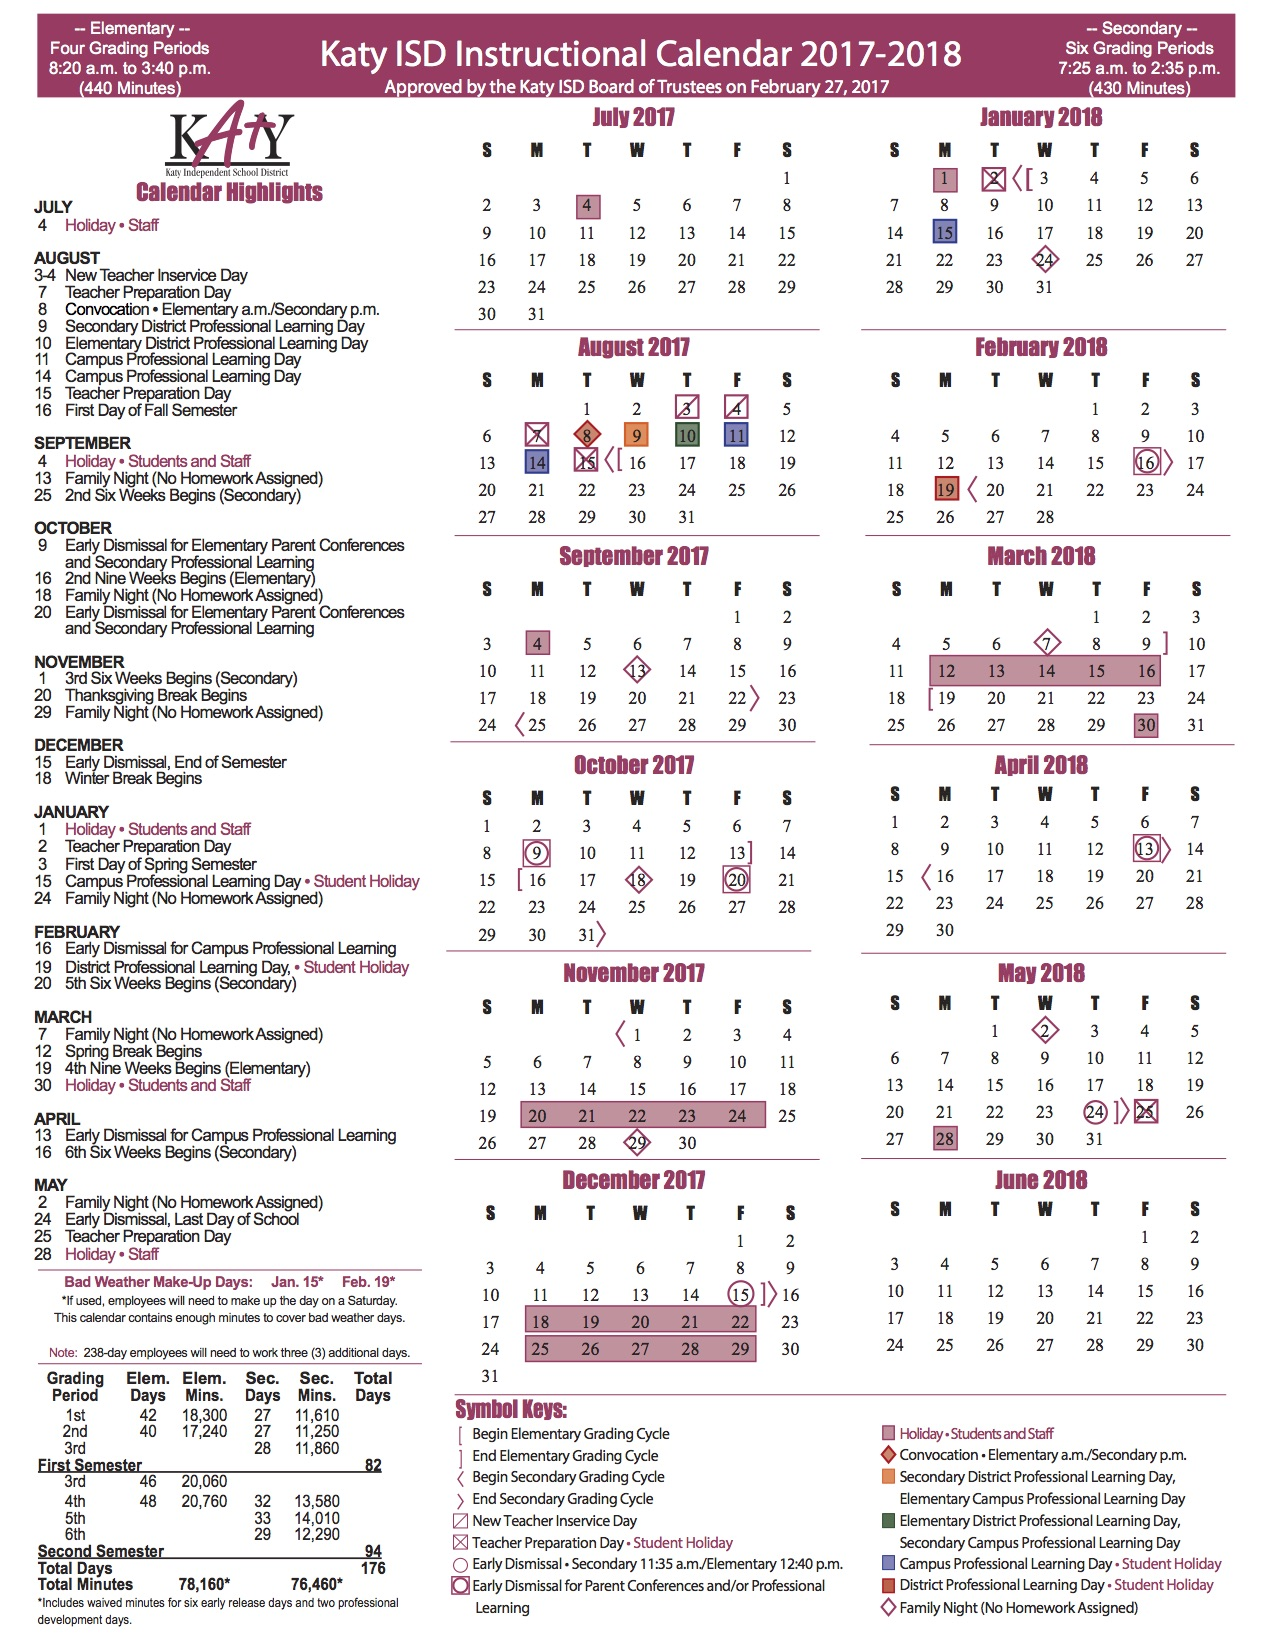 Kisd Calendar 2019 Back to School in Katy ISD & the 2017 2018 Instructional Calendar